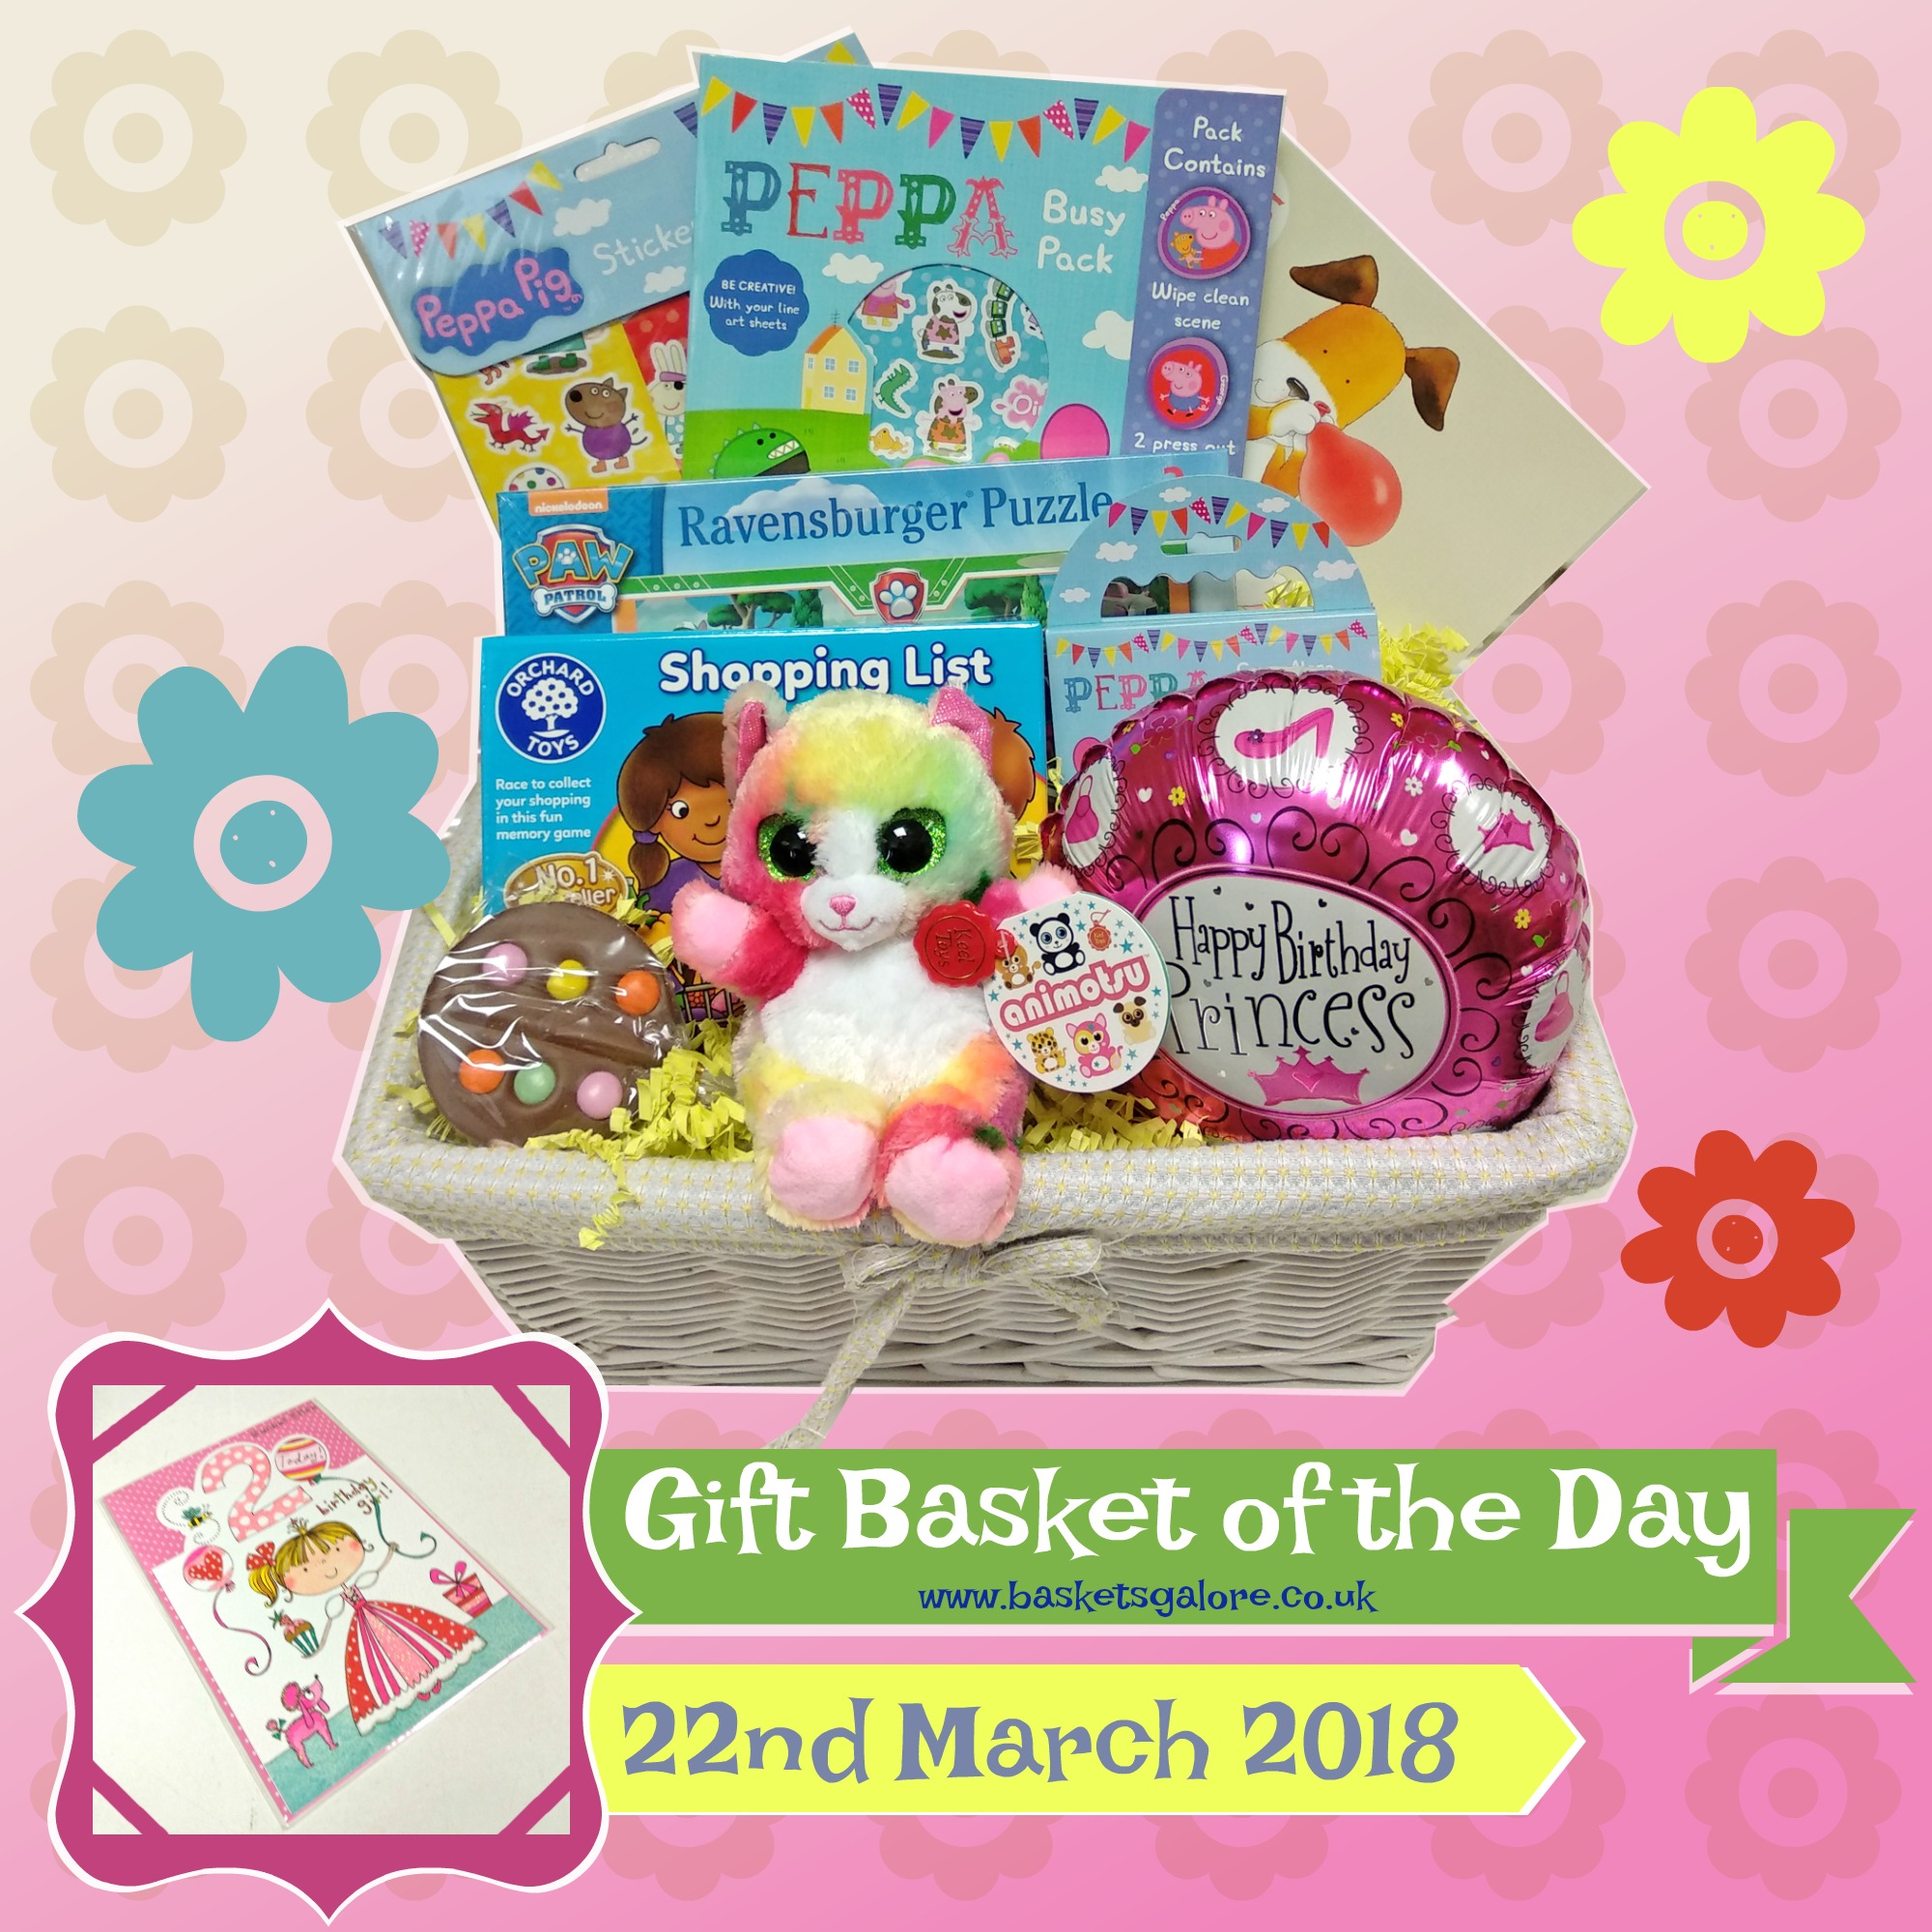 Baskets Galore's Customer Gifts – Gift Basket of the Day 22.03.18